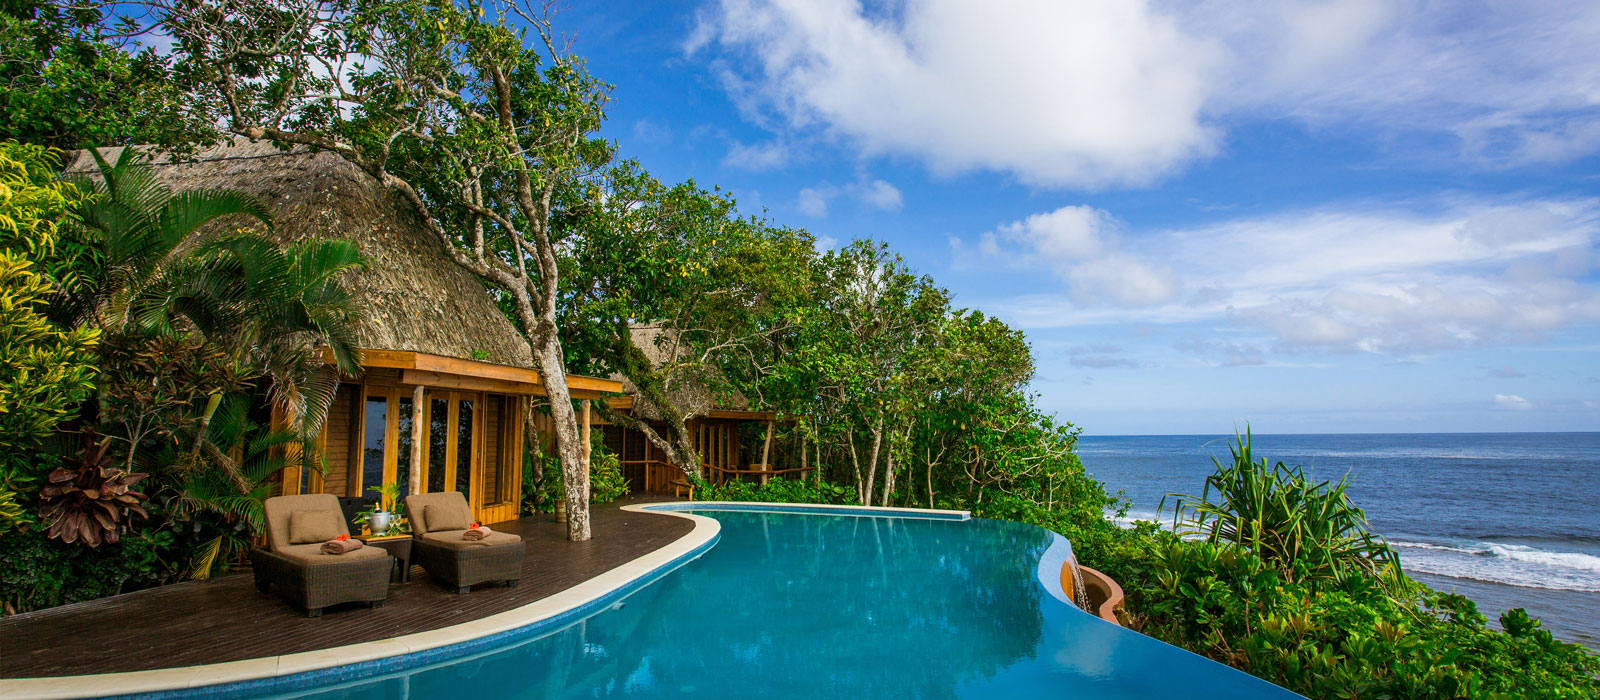 All inclusive resorts in fiji namale resort spa fiji for Truly all inclusive resorts